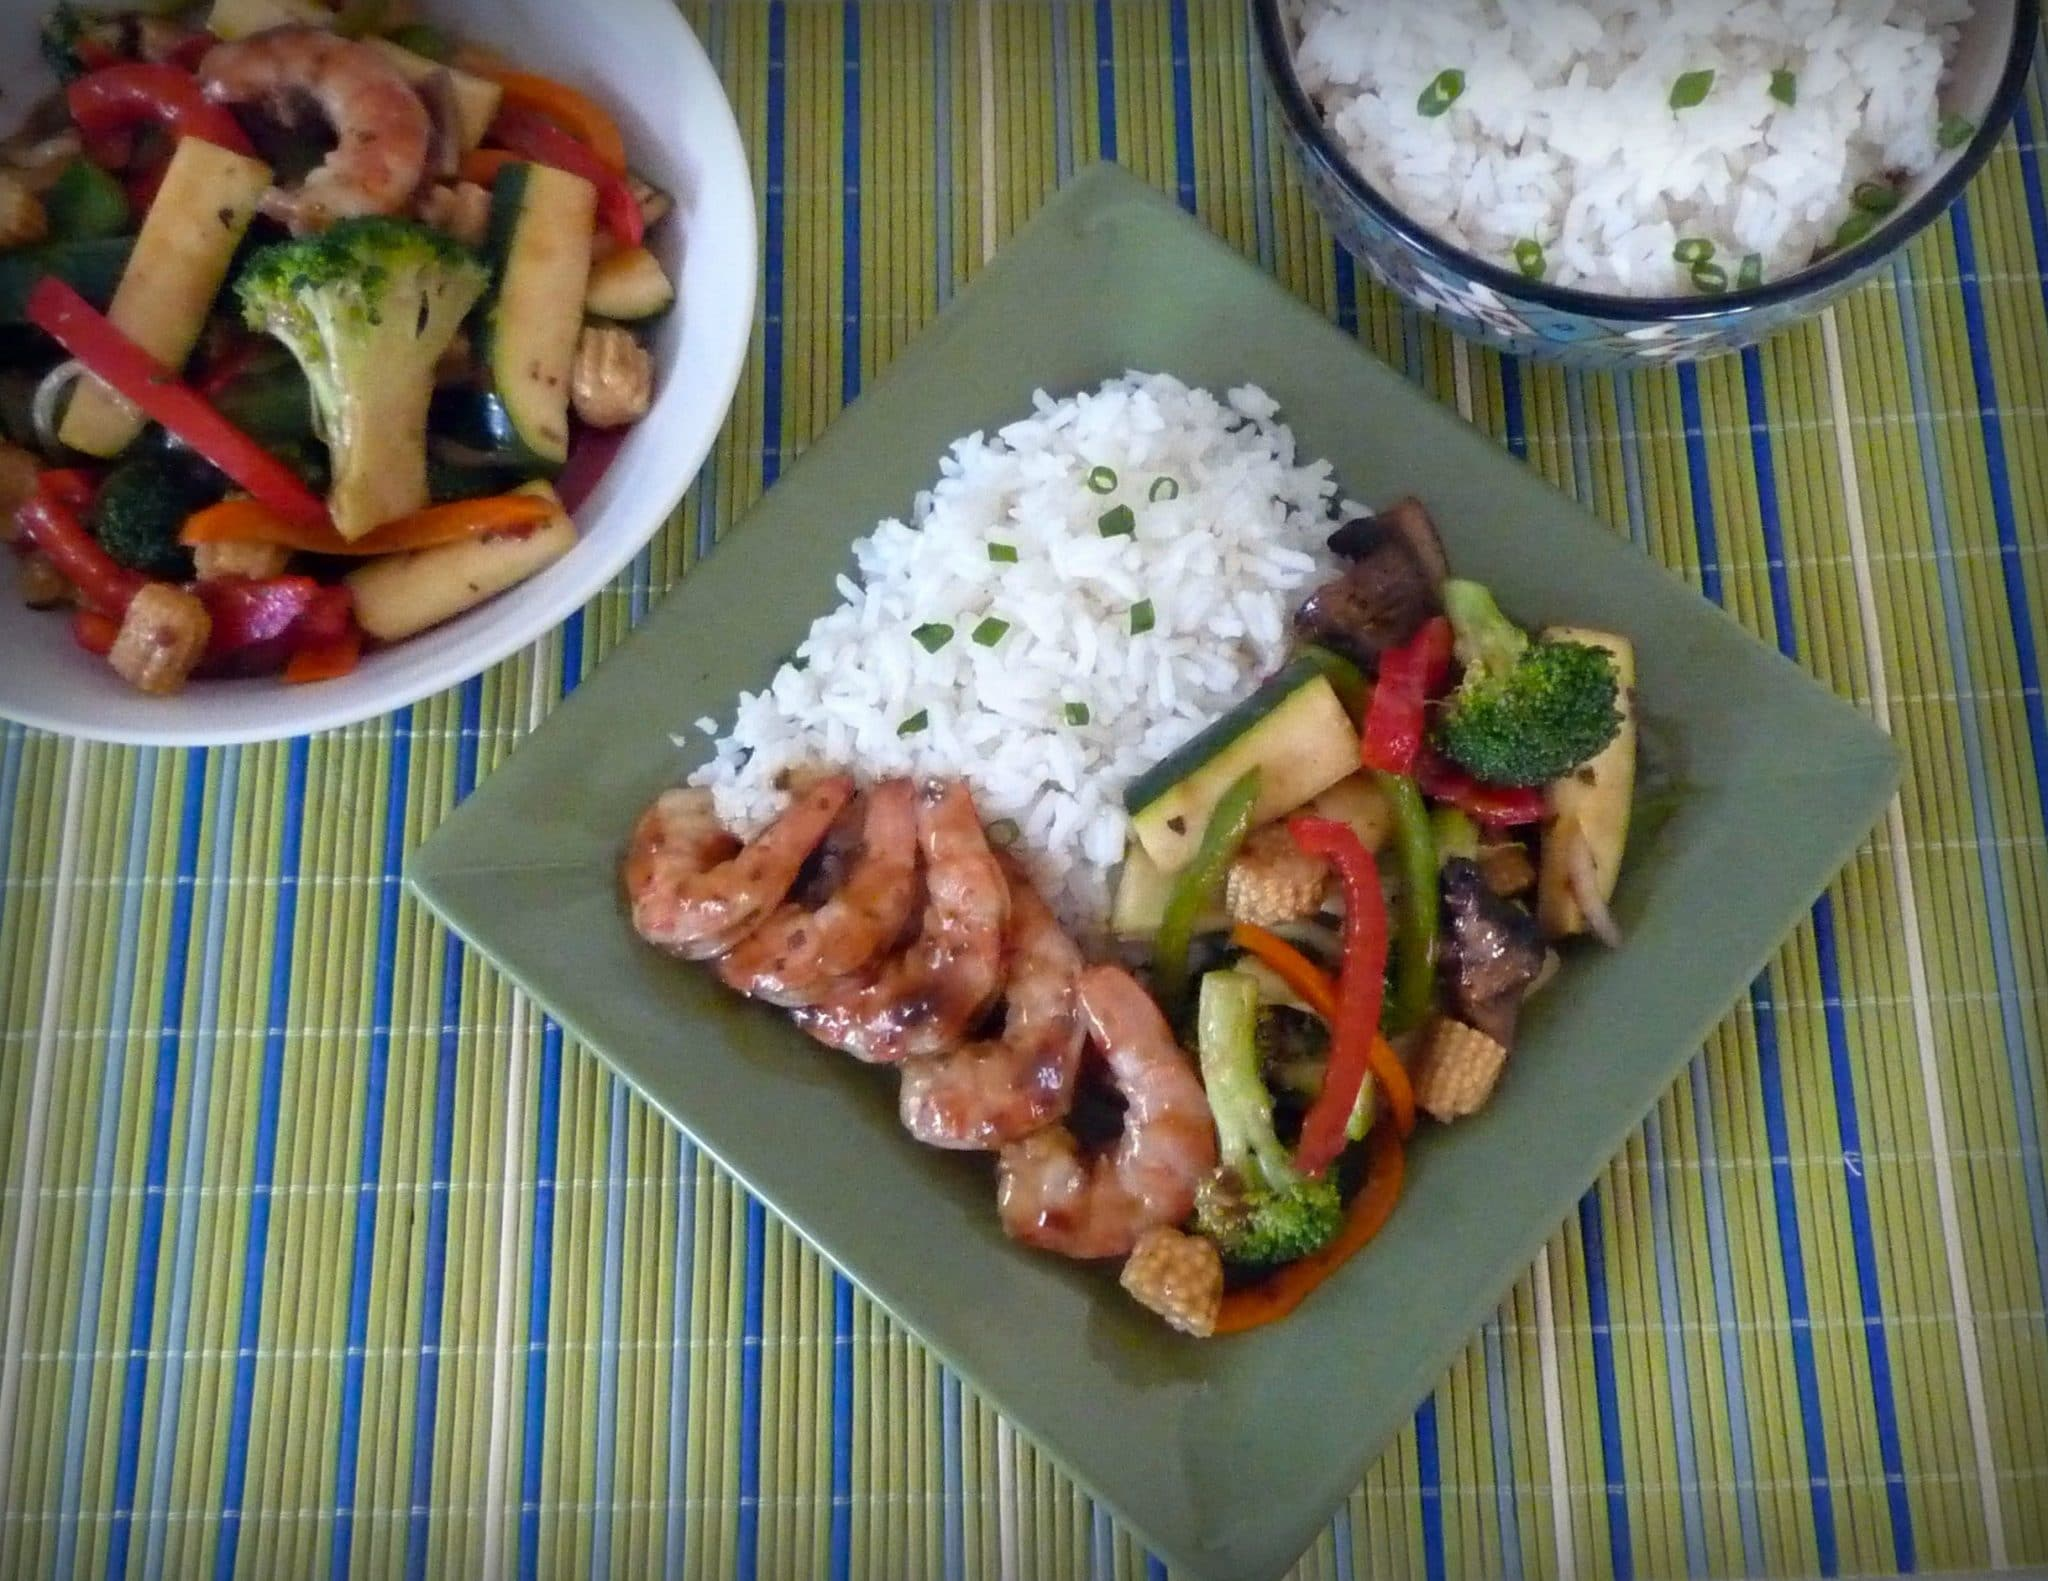 Thai Brown Curry Shrimp with Vegetable Stir Fry in light sauce